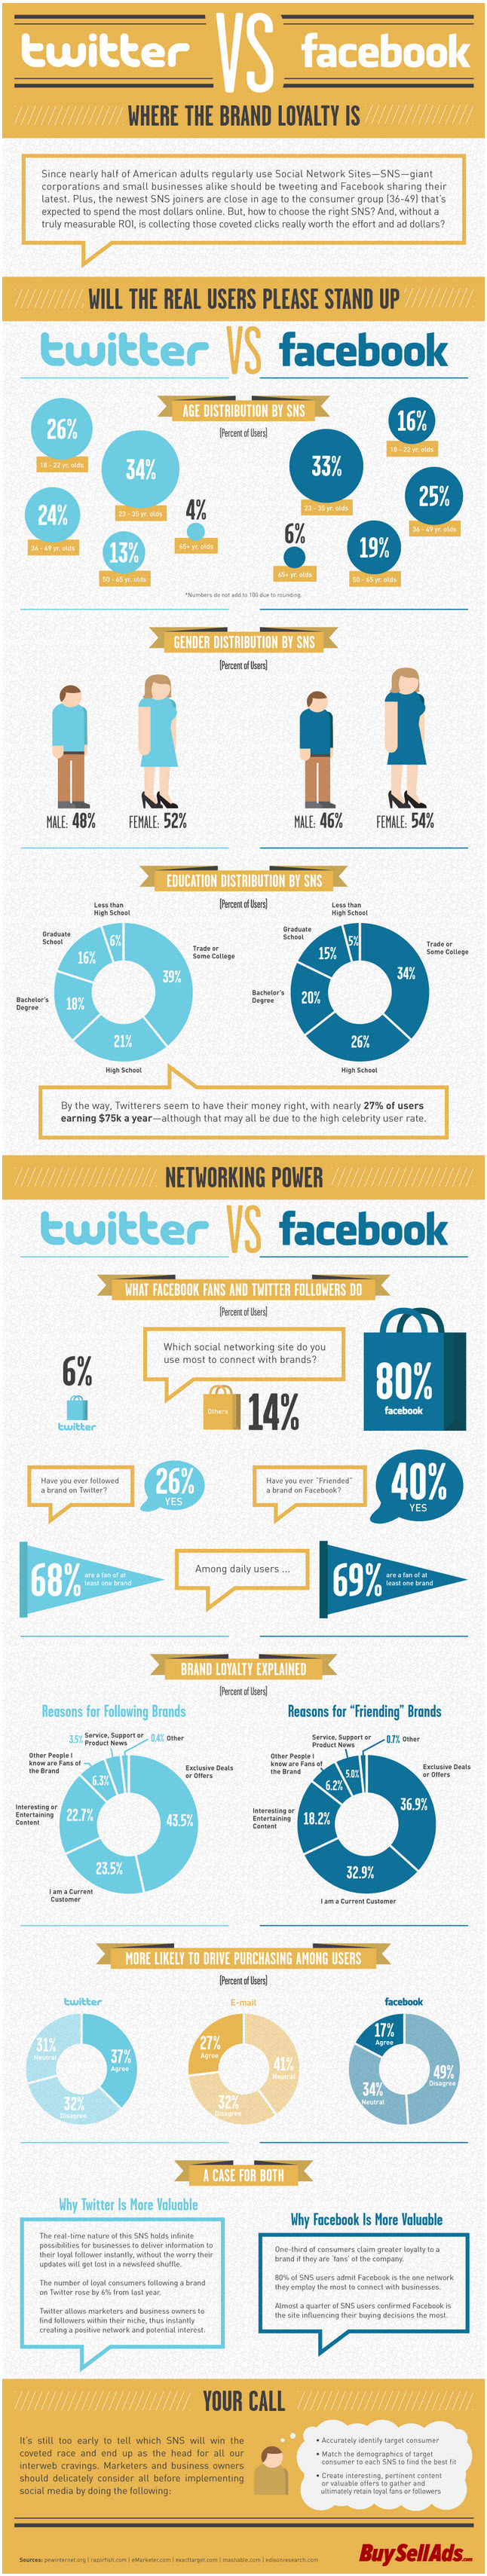 Twitter-vs-Facebook-Infographic